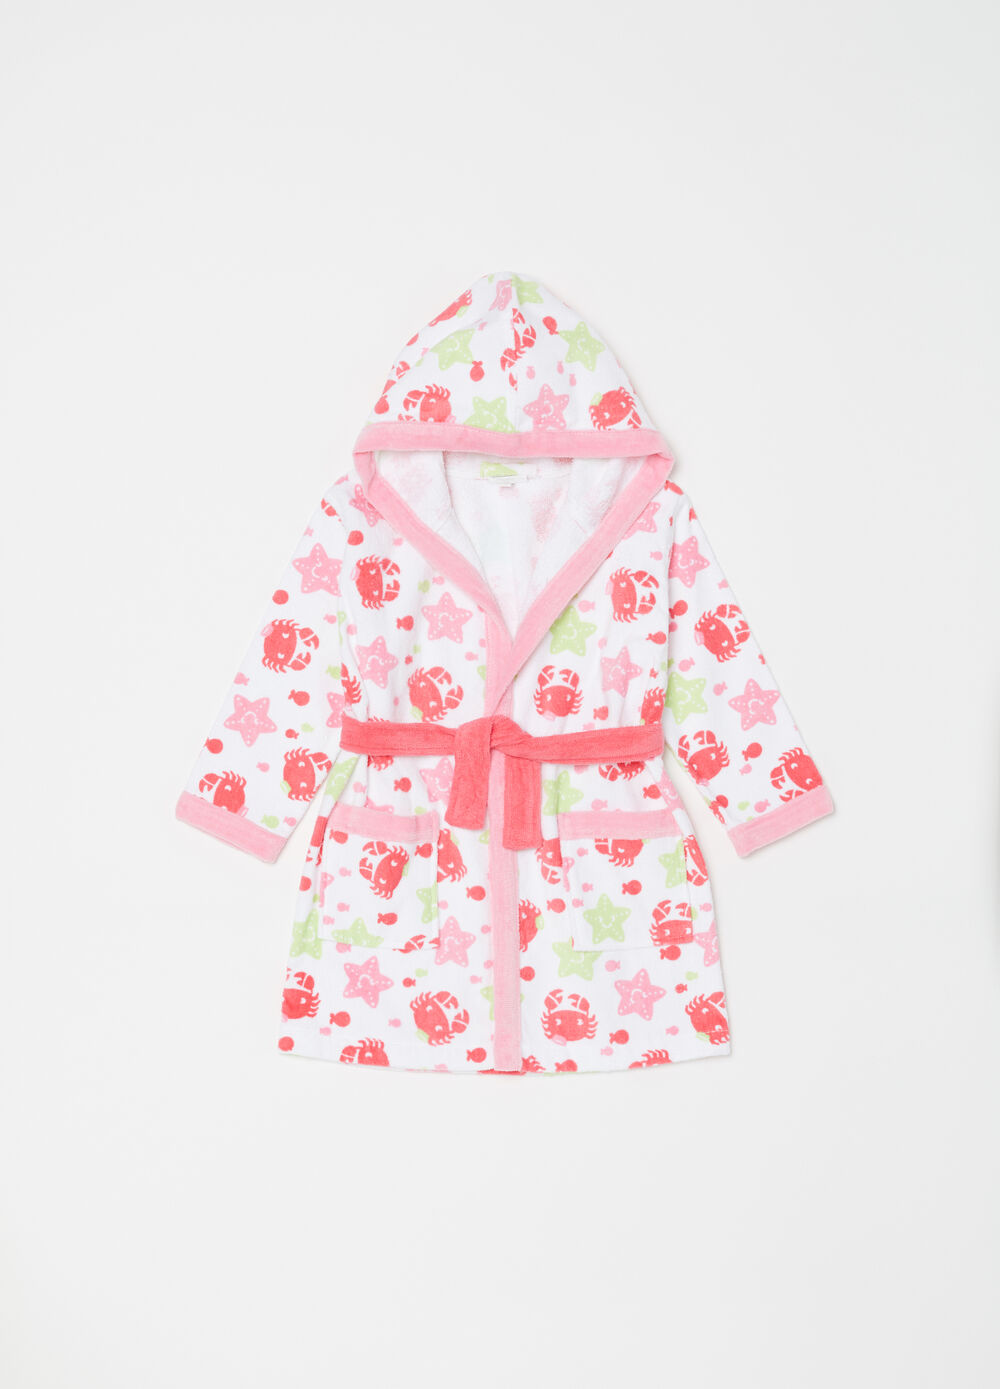 Cotton bathrobe with navy pattern